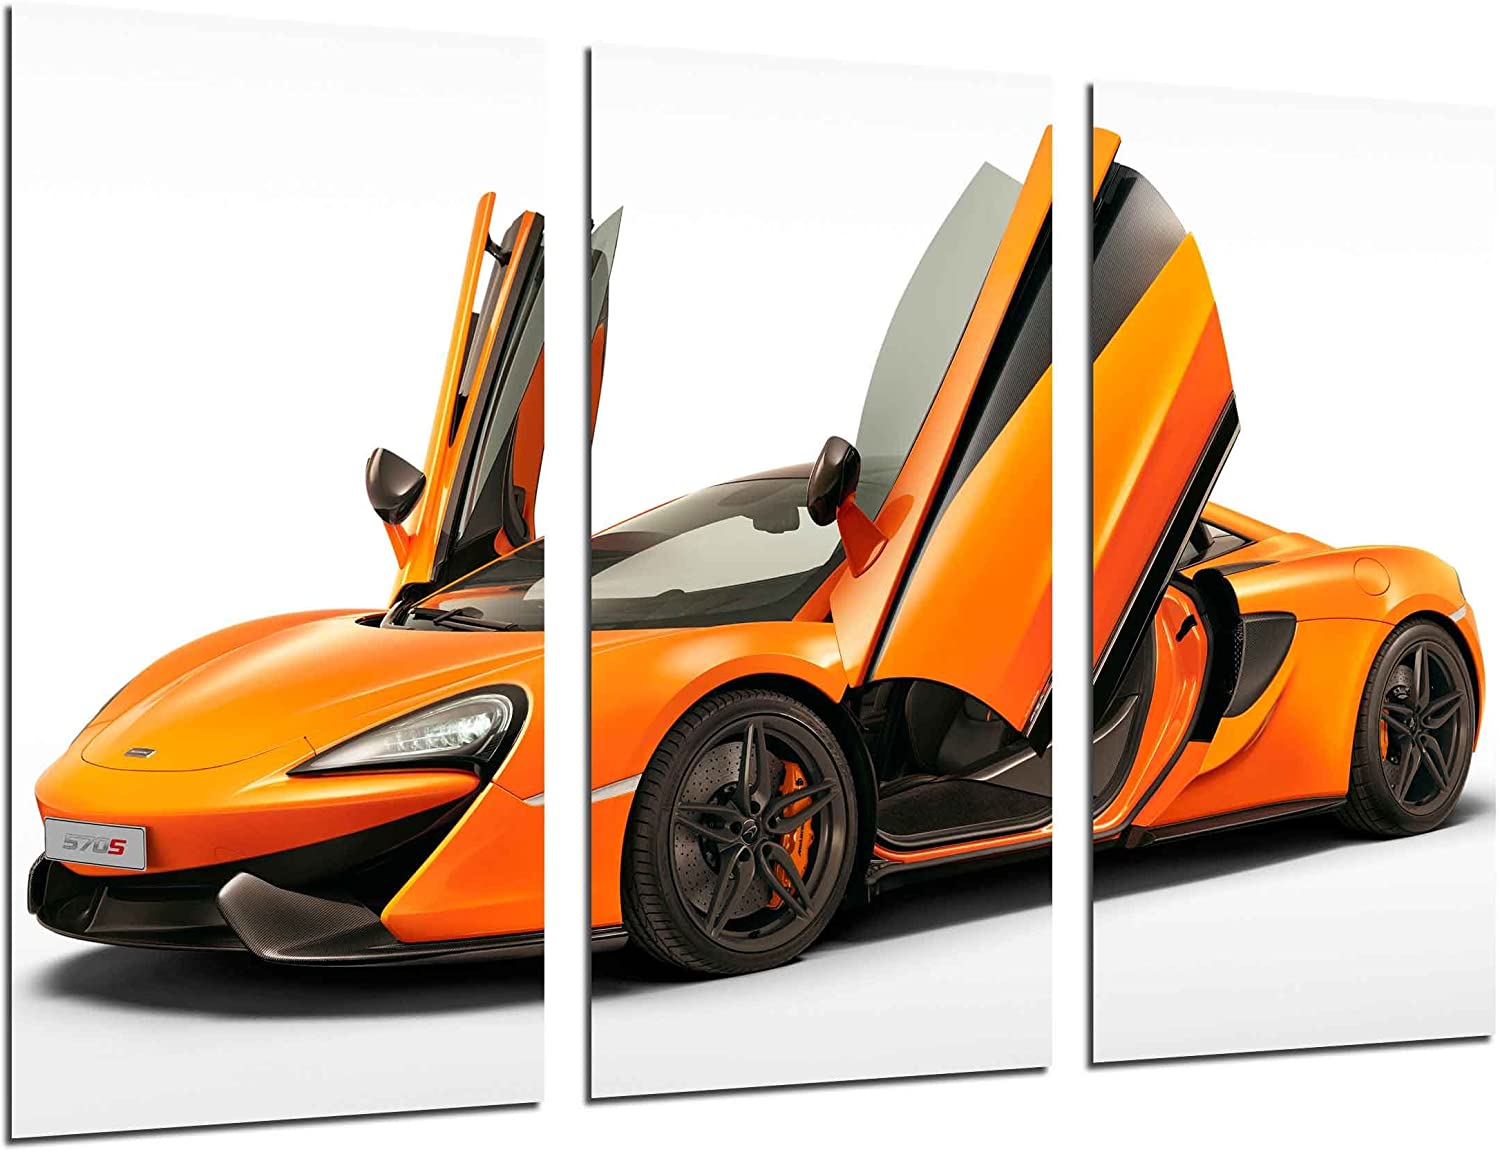 Cuadros Camara Multi Wood Printings Art Print Box Framed Picture Wall Hanging - (Total Size: 38 x 24.4 in), Sports Car, Mclaren 570S, Orange - Framed and Ready to Hang - ref. 26507